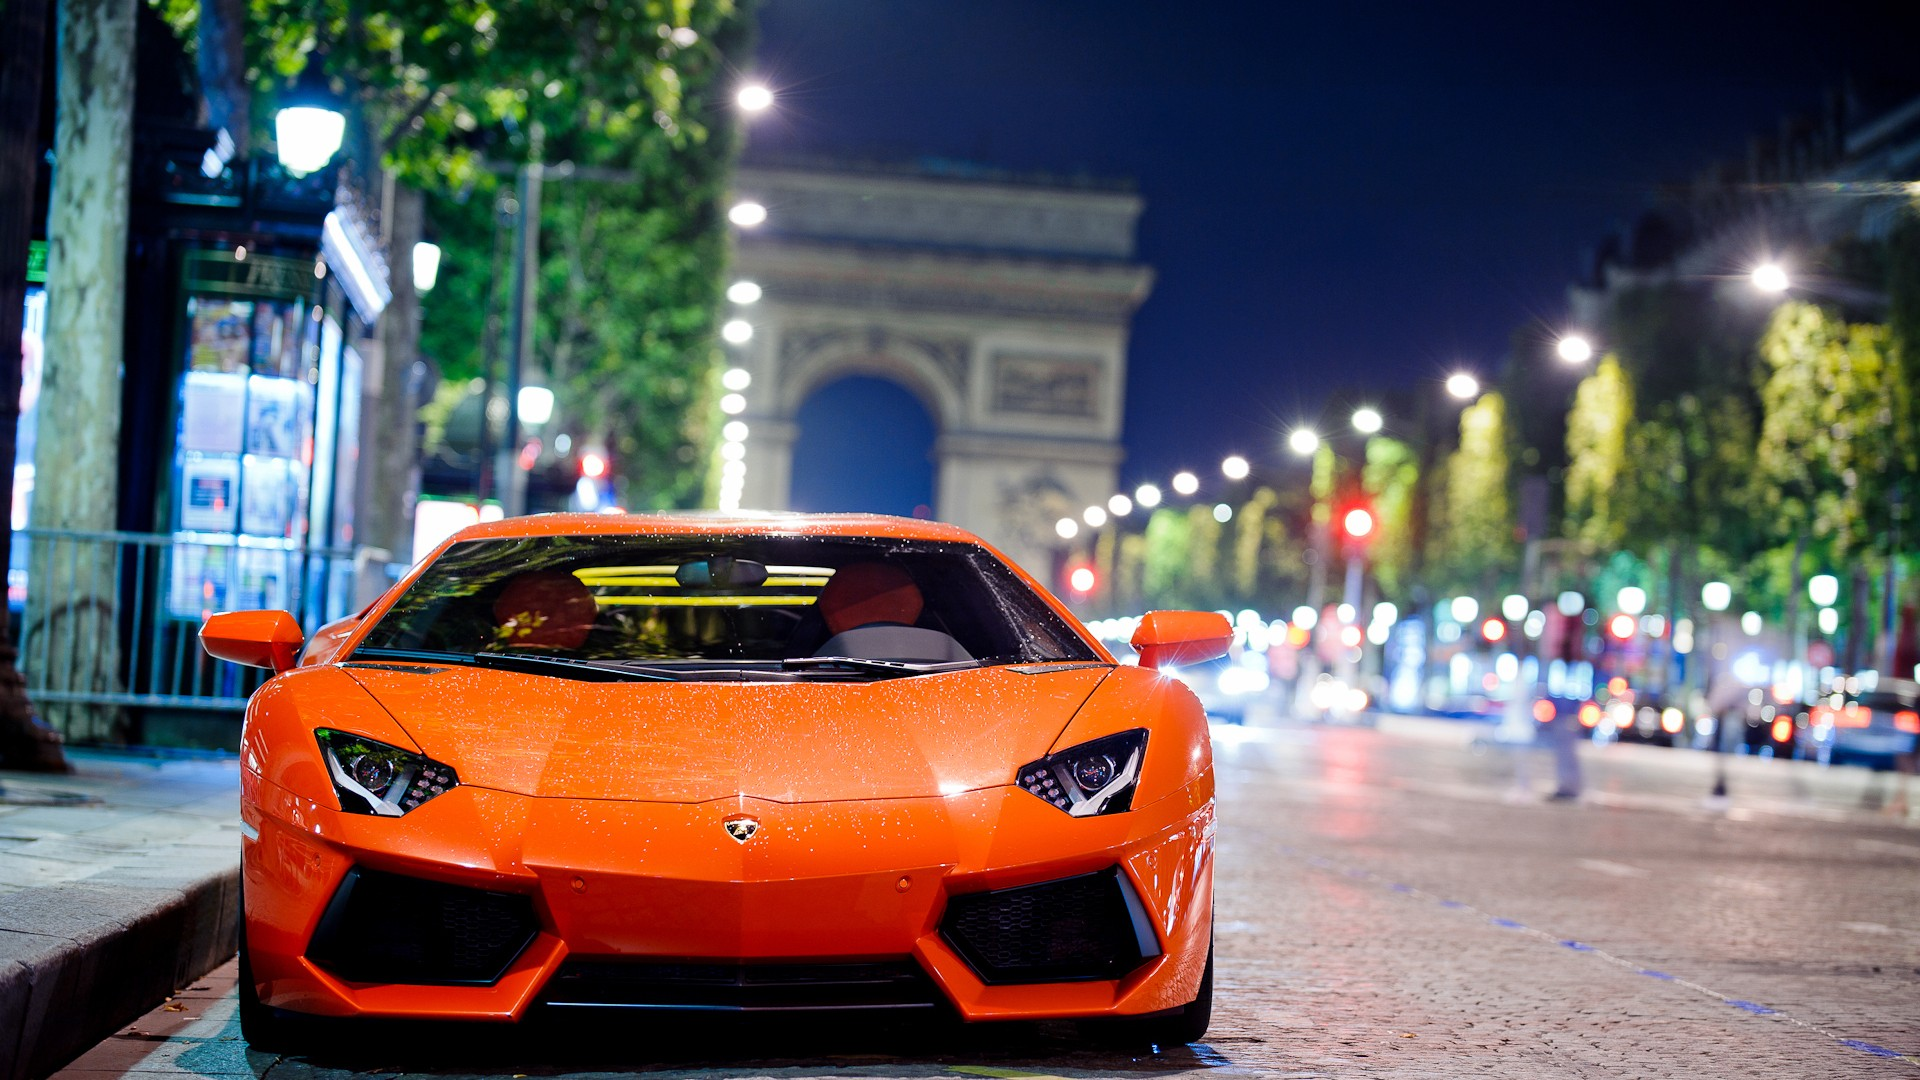 Lamborghini Aventador Night Shot Wallpapers HD Wallpapers 1920x1080